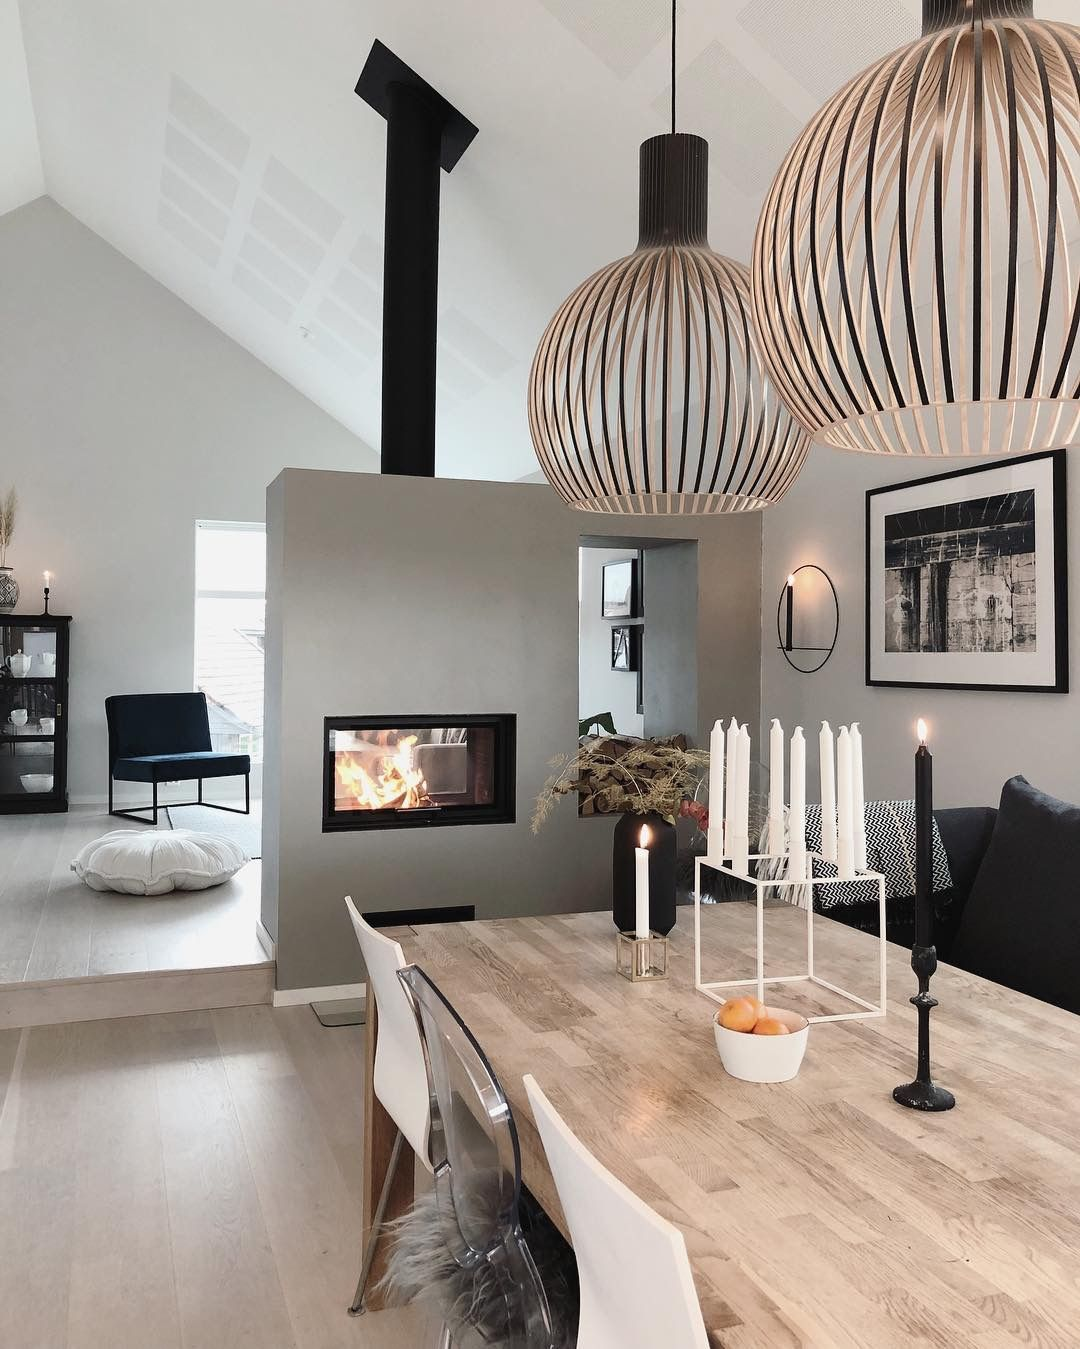 Interior Trends 2020 Top 2019 Decor Trends According To Pinterest Kitchen Decor Trends Trending Decor Coastal Decorating Living Room